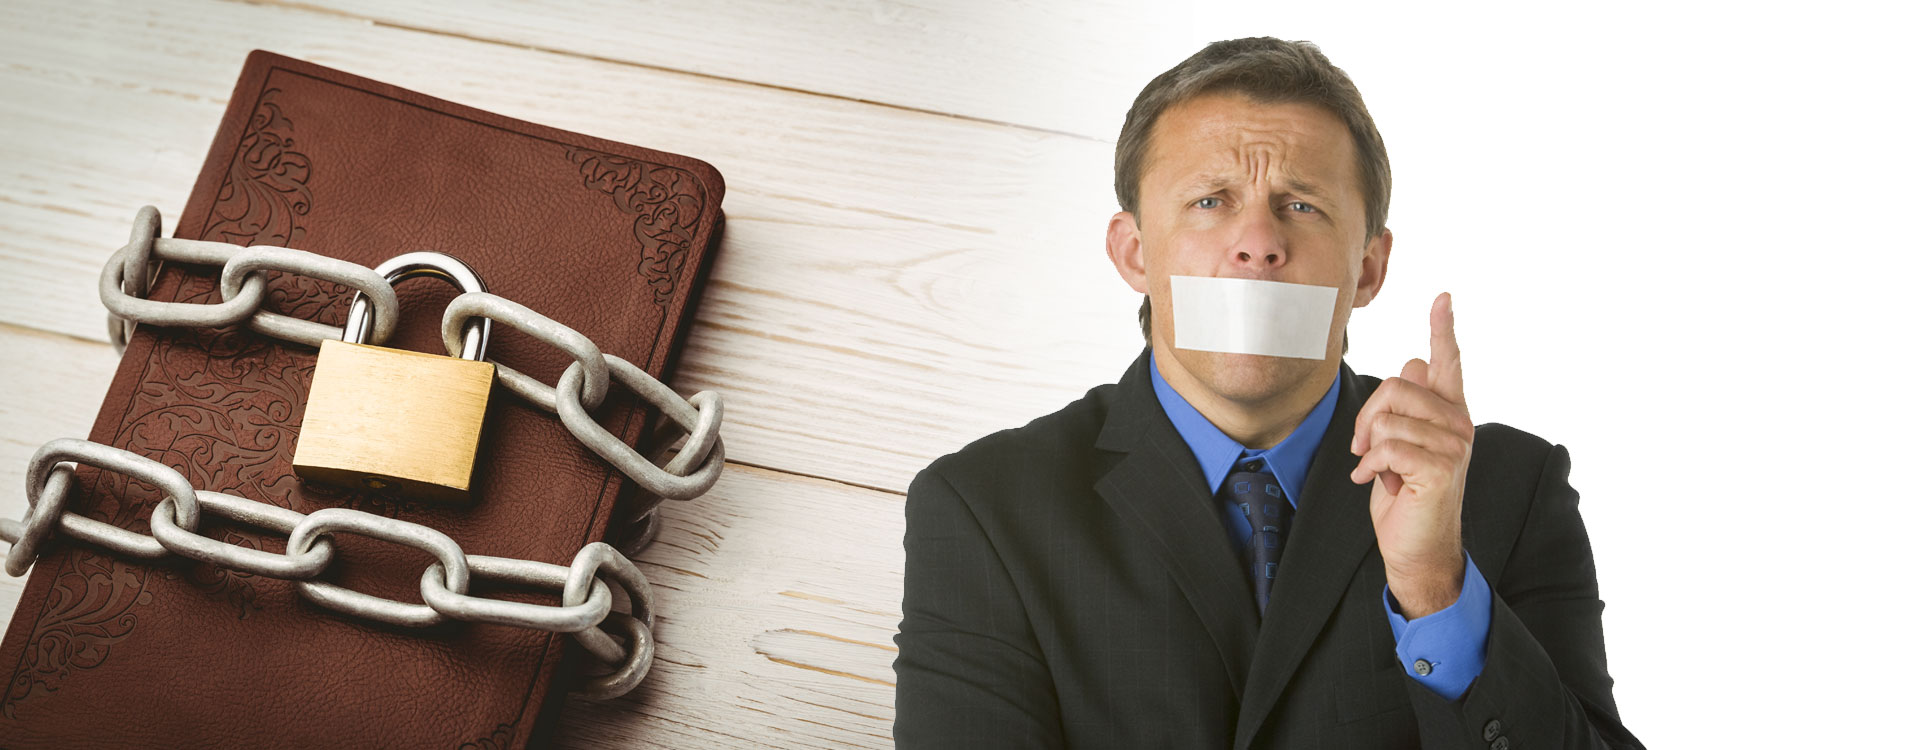 chained bible next to a person with tape over their mouth